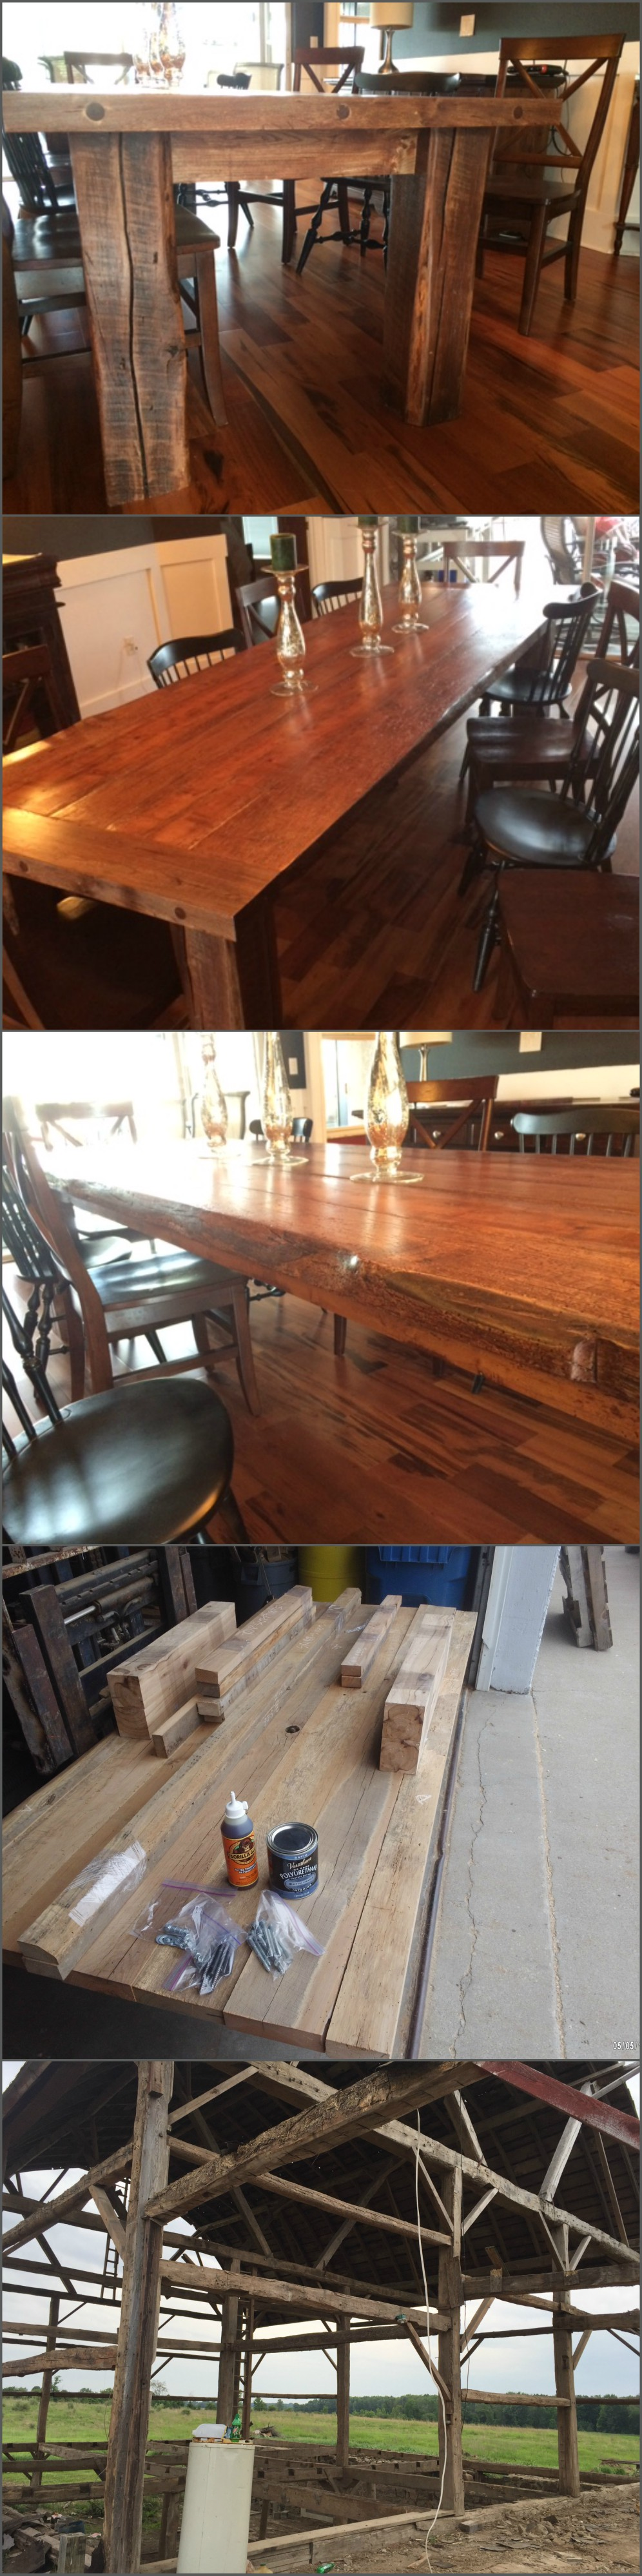 DIY Reclaimed Barn Wood Table Kits Lumber Ready Meaning All The Material Is Processed